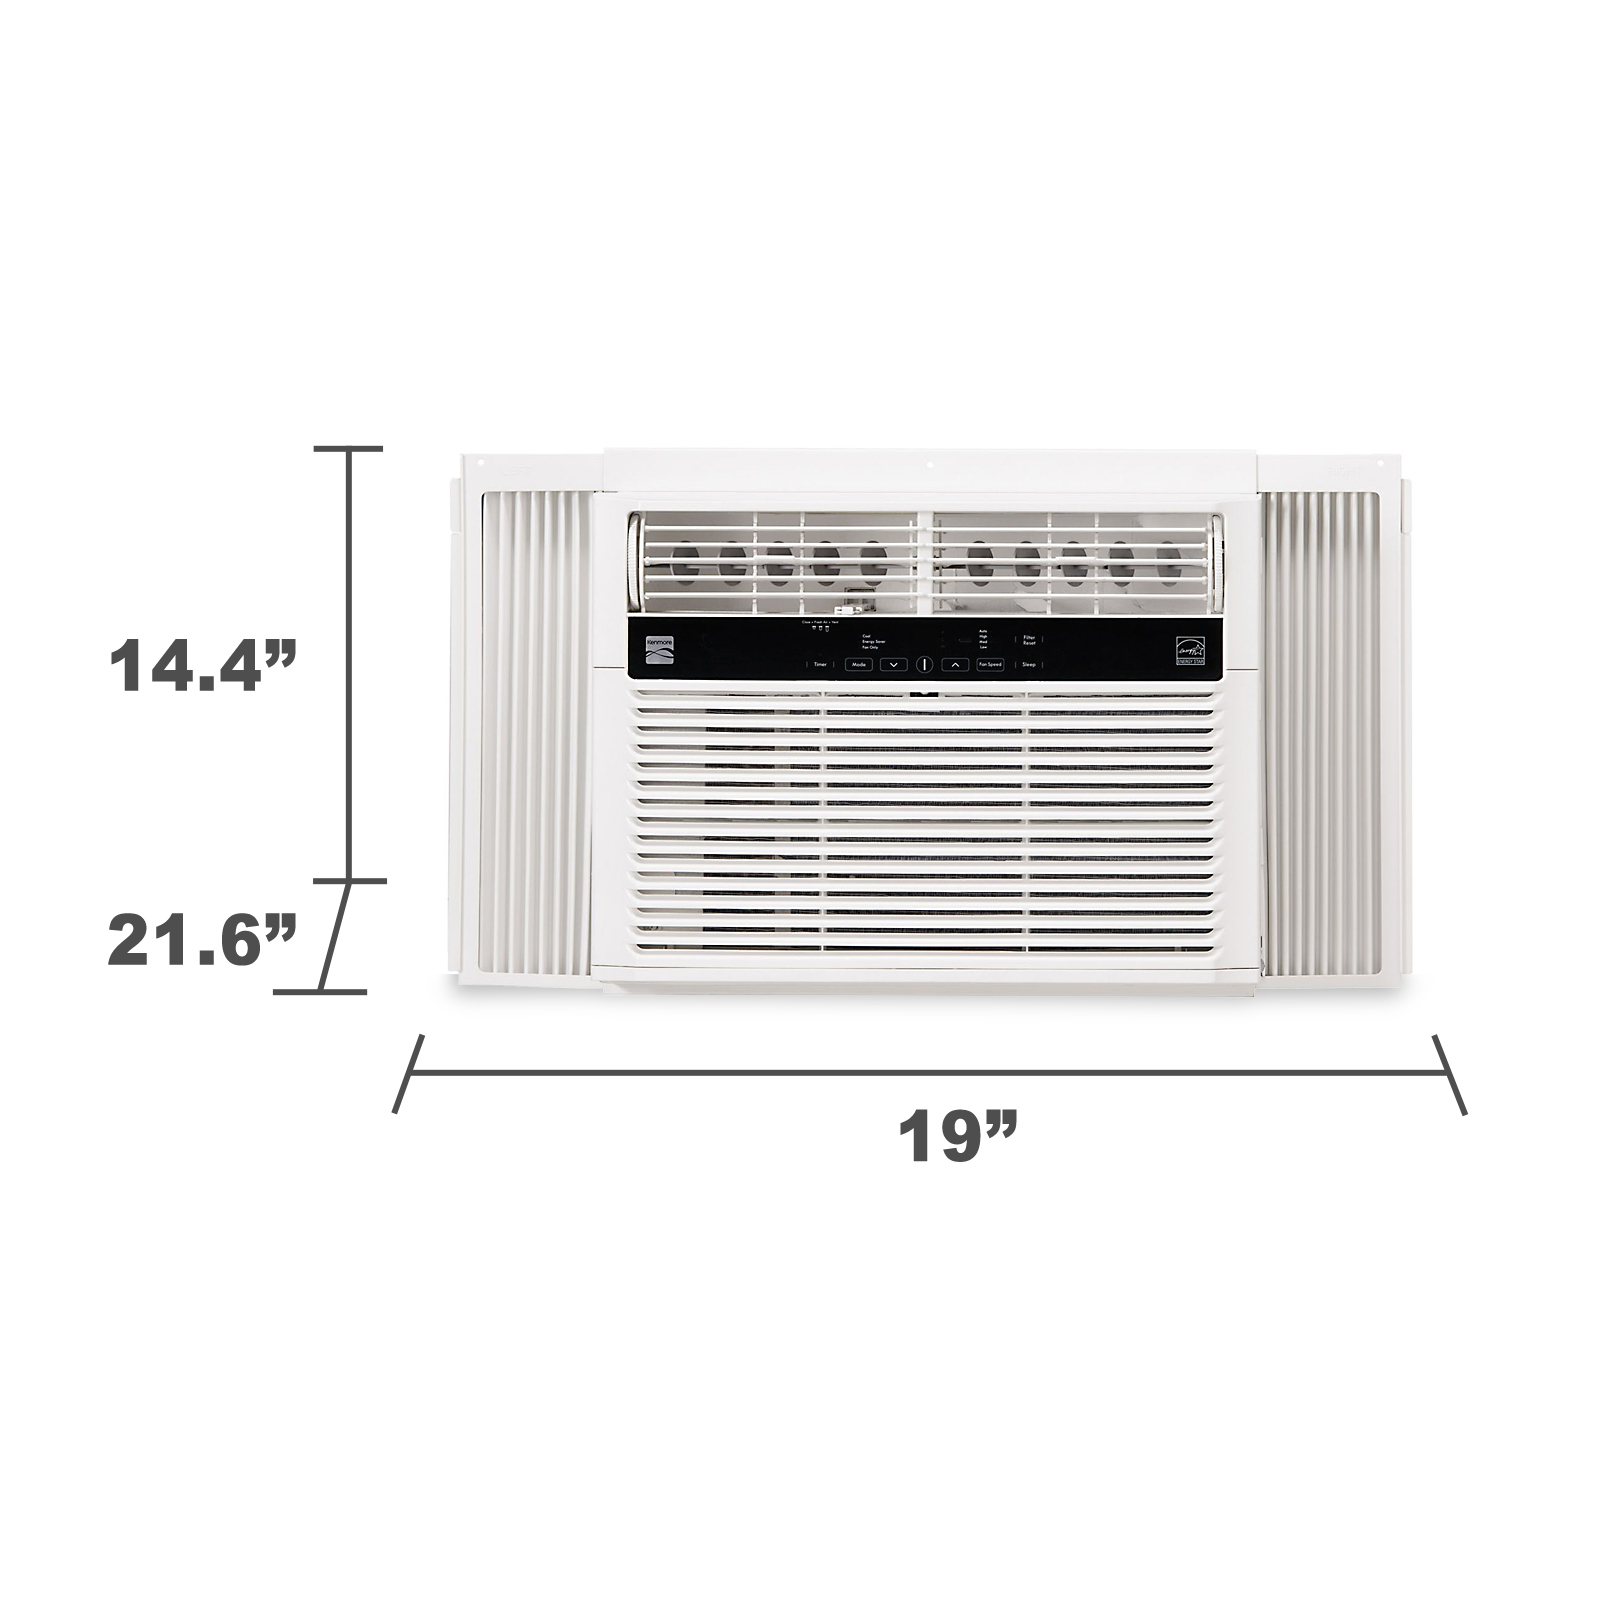 Kenmore 12 000 BTU Multi-Room Air Conditioner